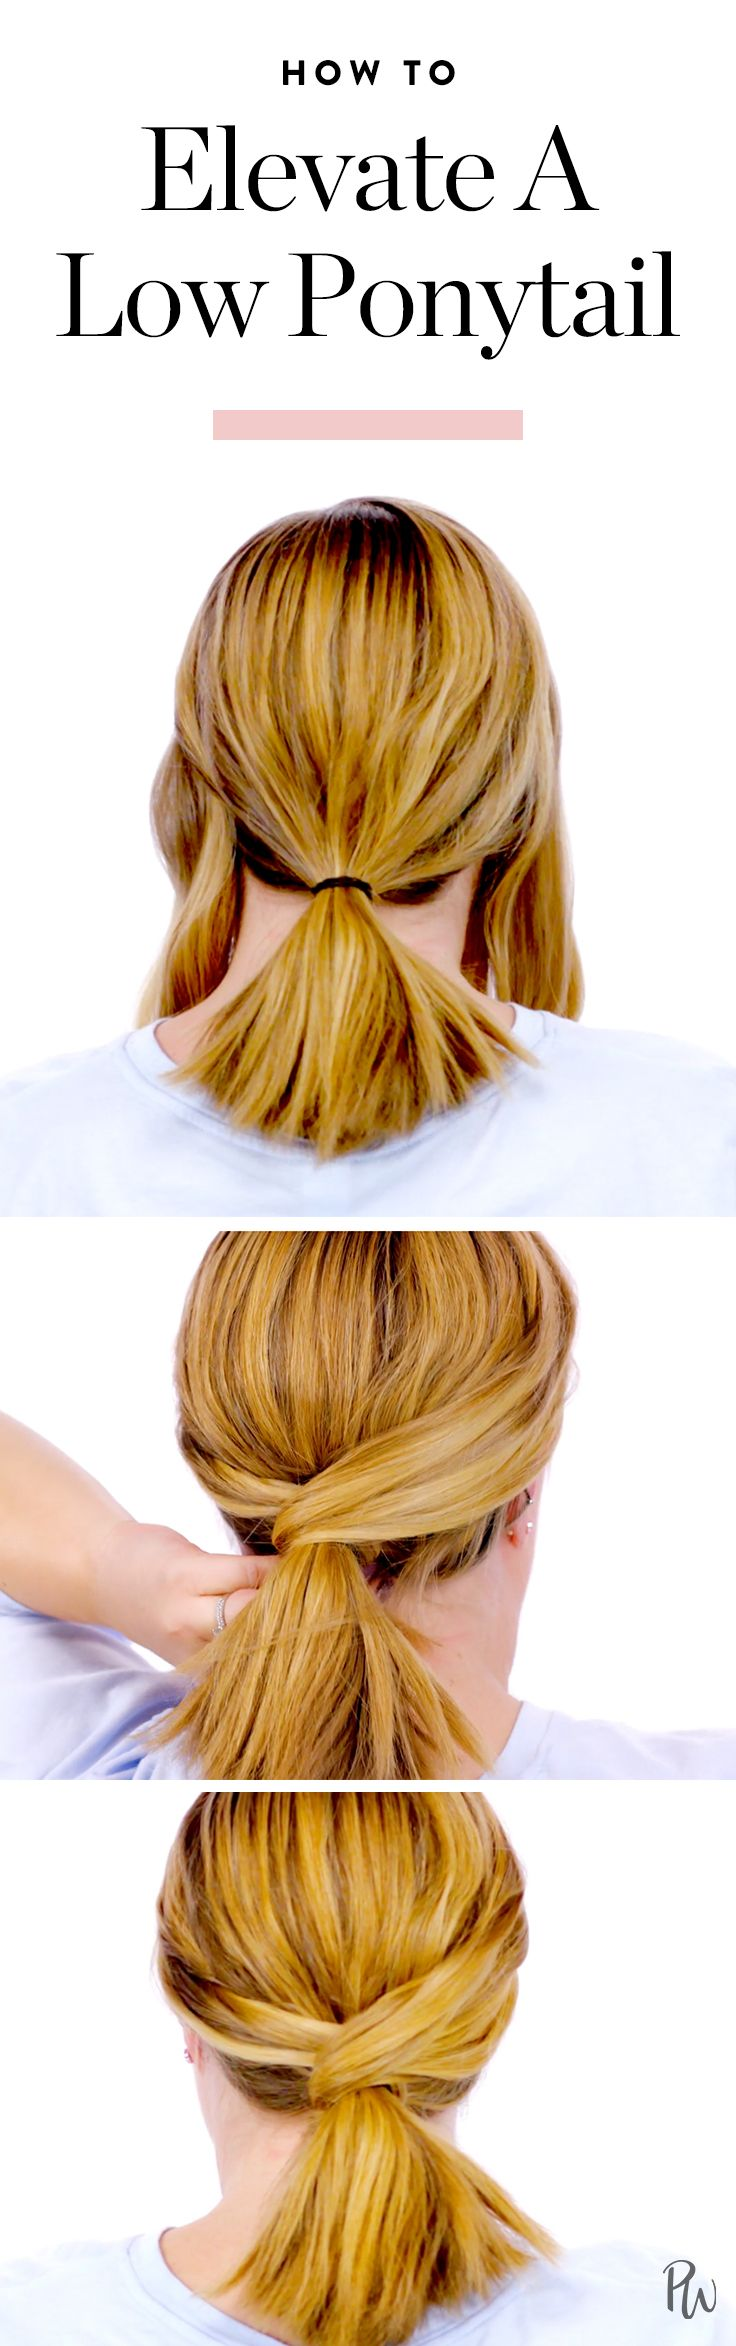 Here's how to elevate a low ponytail for an ultra chic (and simple) hairstyle. #...